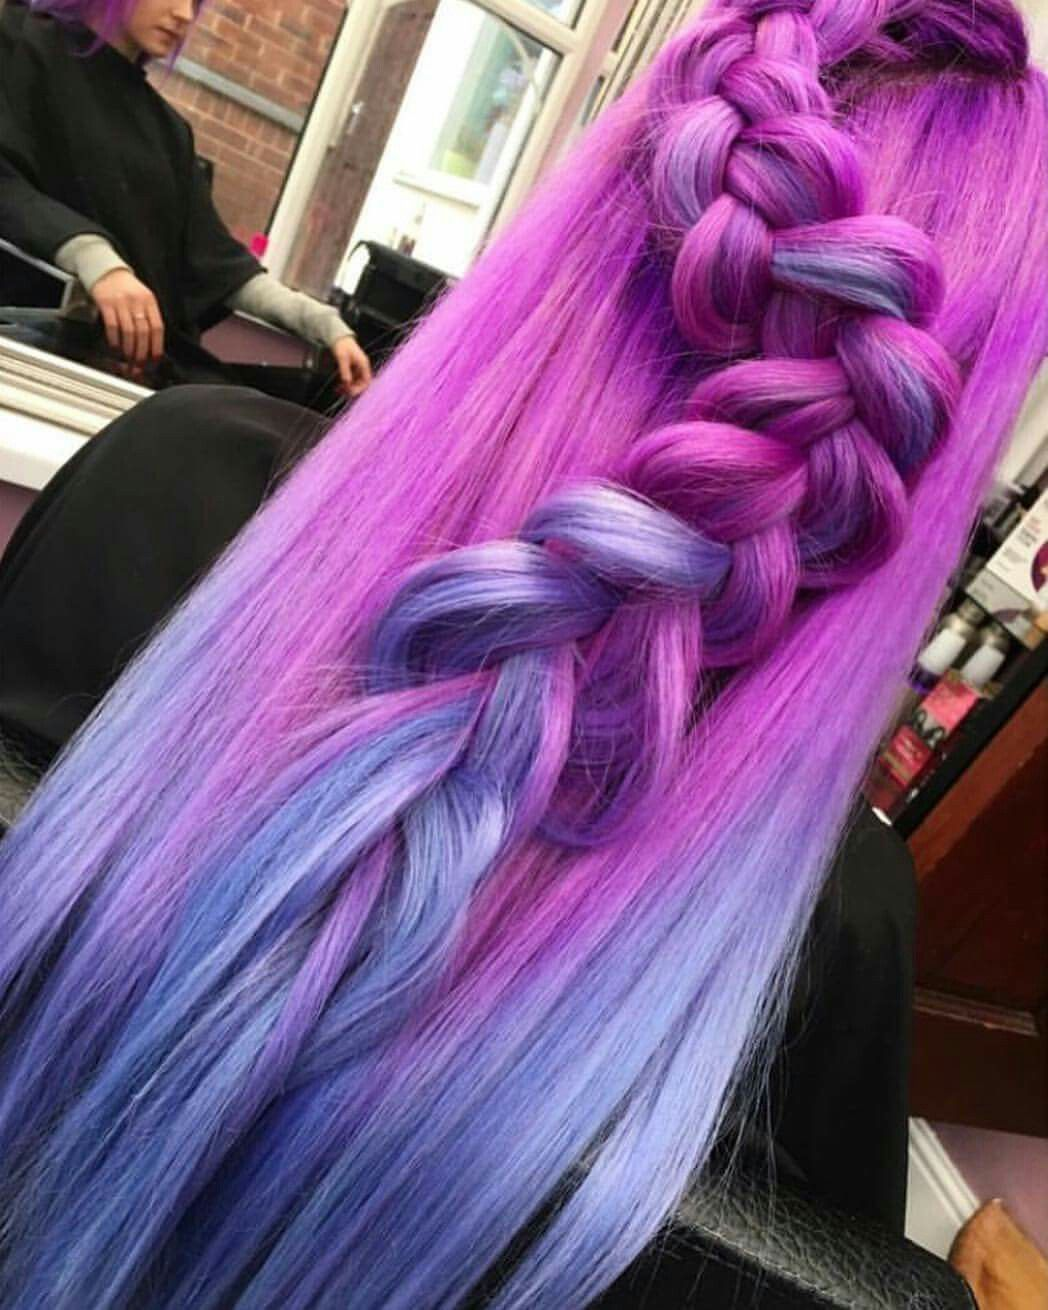 Pin on Hair Cuts & Colors